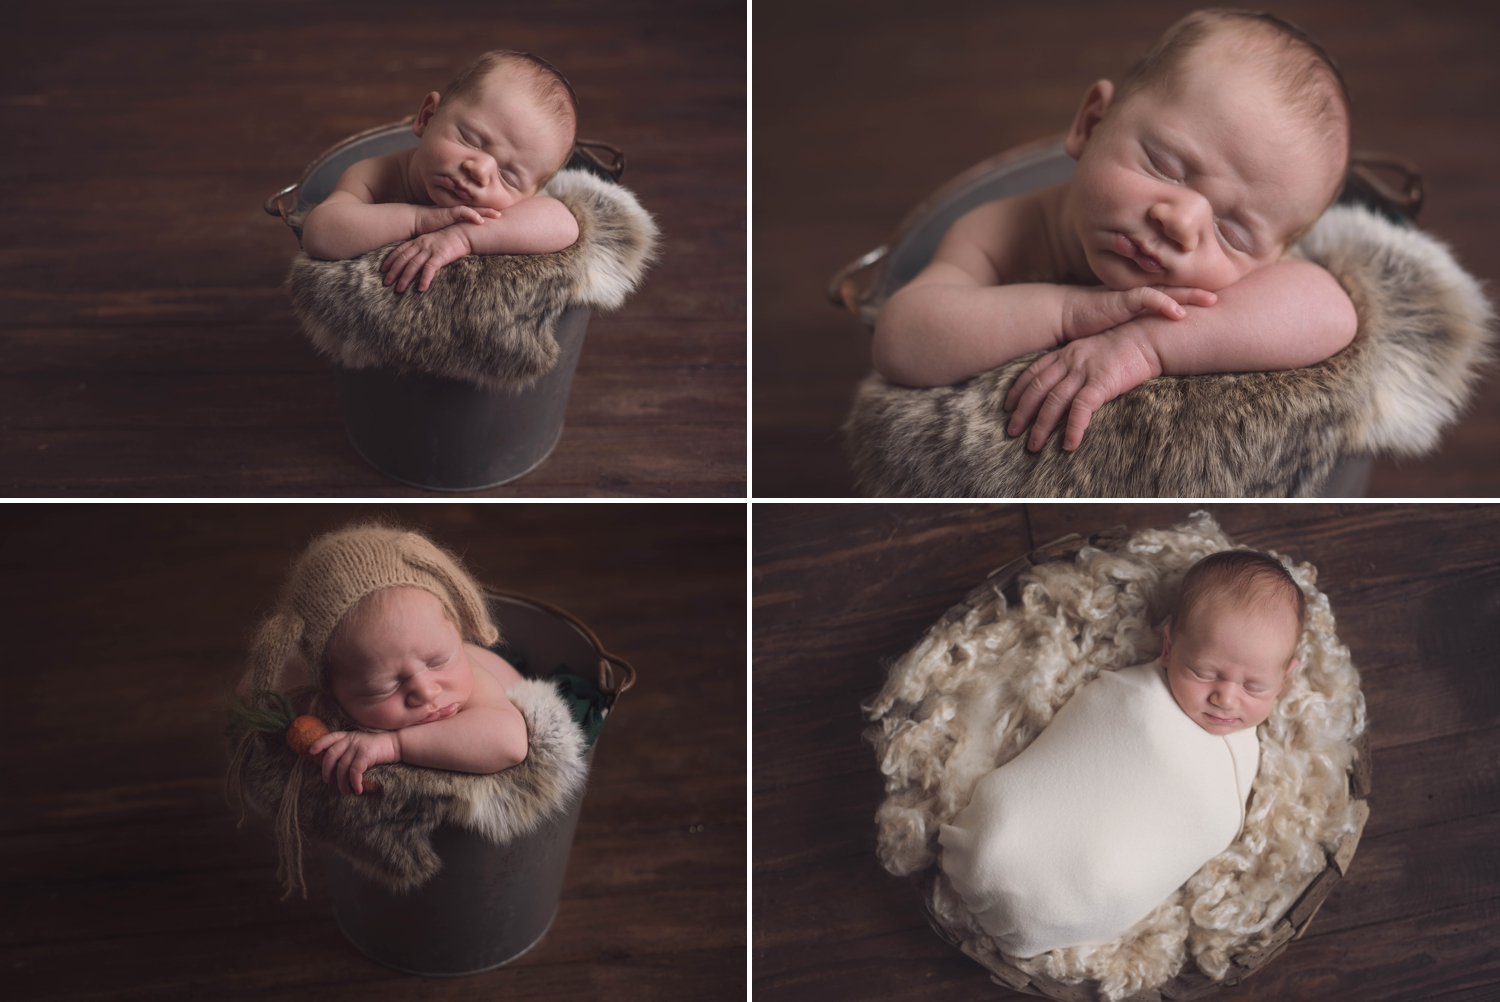 10 day old newborn photography kansas 4.jpg